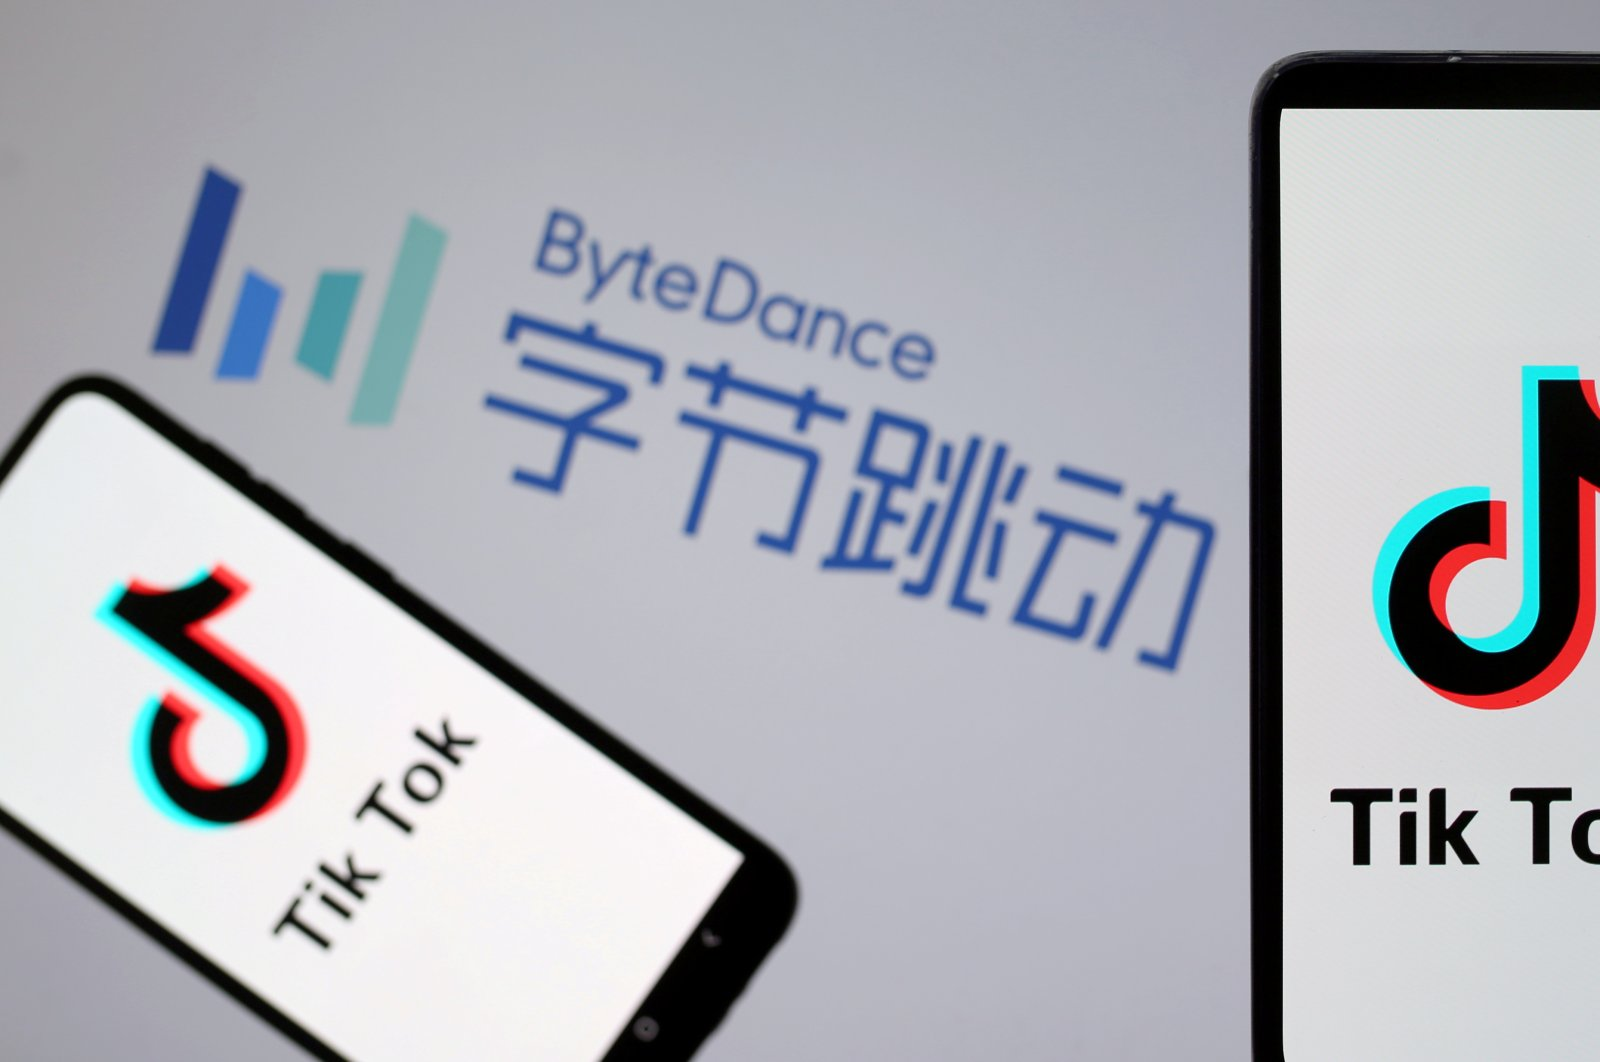 TikTok logos are seen on smartphones in front of a displayed ByteDance logo in this illustration taken Nov. 27, 2019. (Reuters Photo)